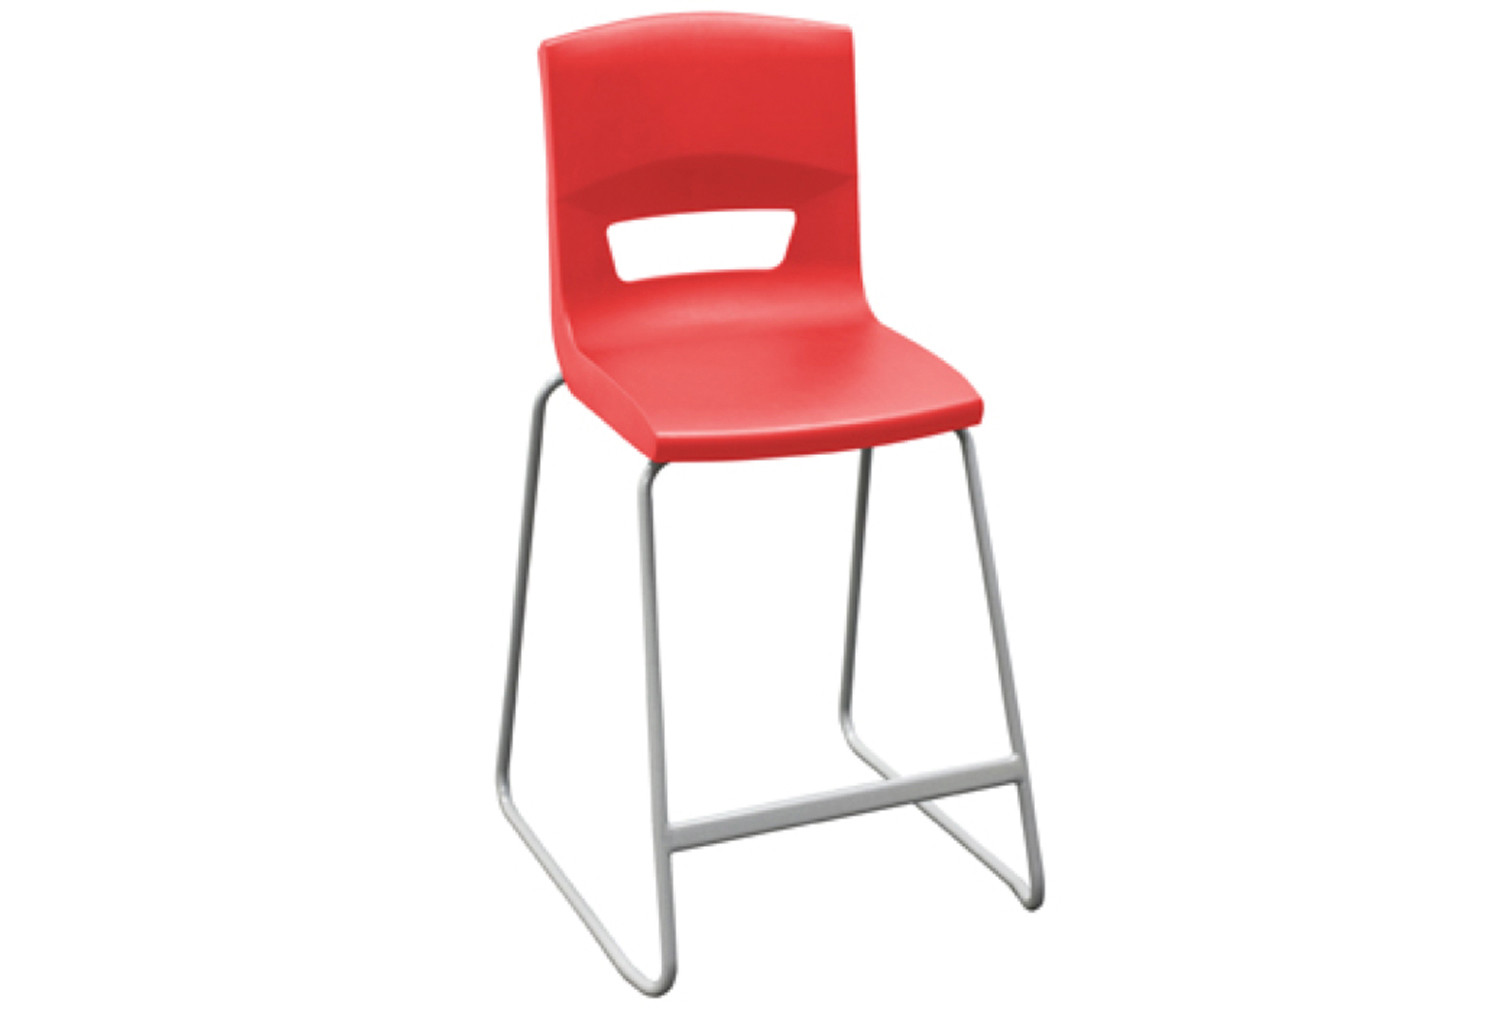 10 X White High Classroom Chair. Find Loads More Colours, Materials & Styles Online - Buy Office Furniture Online